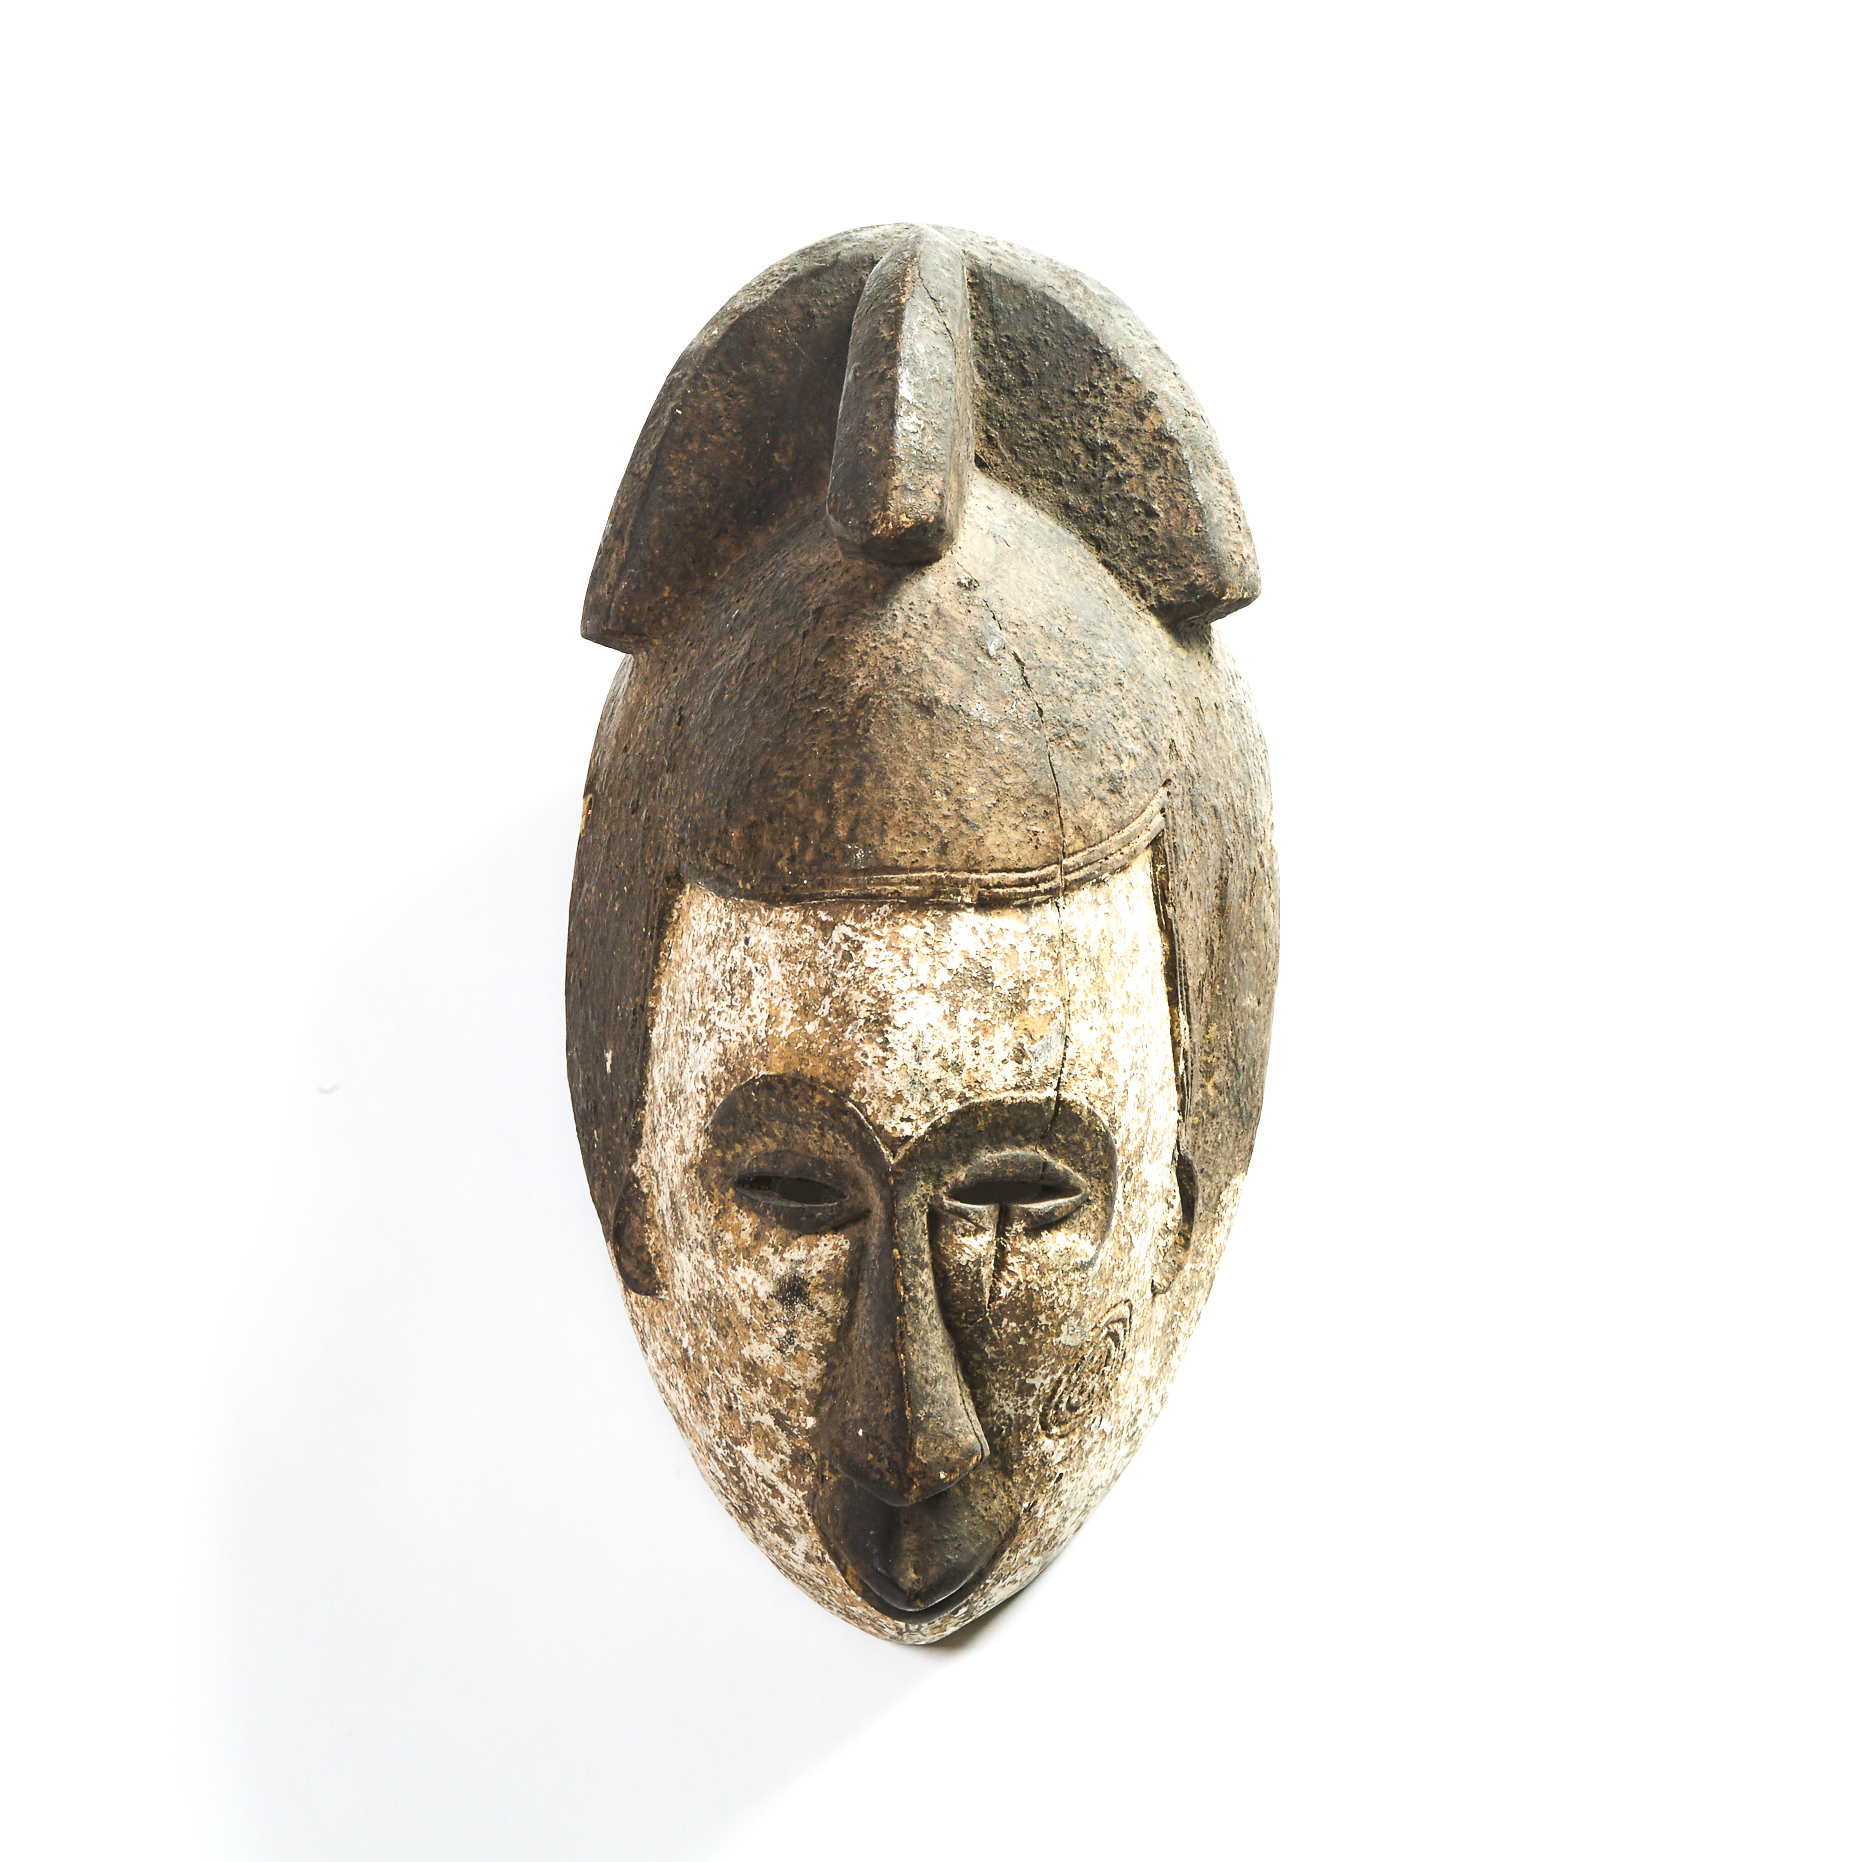 Punu Mask, Gabon, Central Africa, mid 20th century